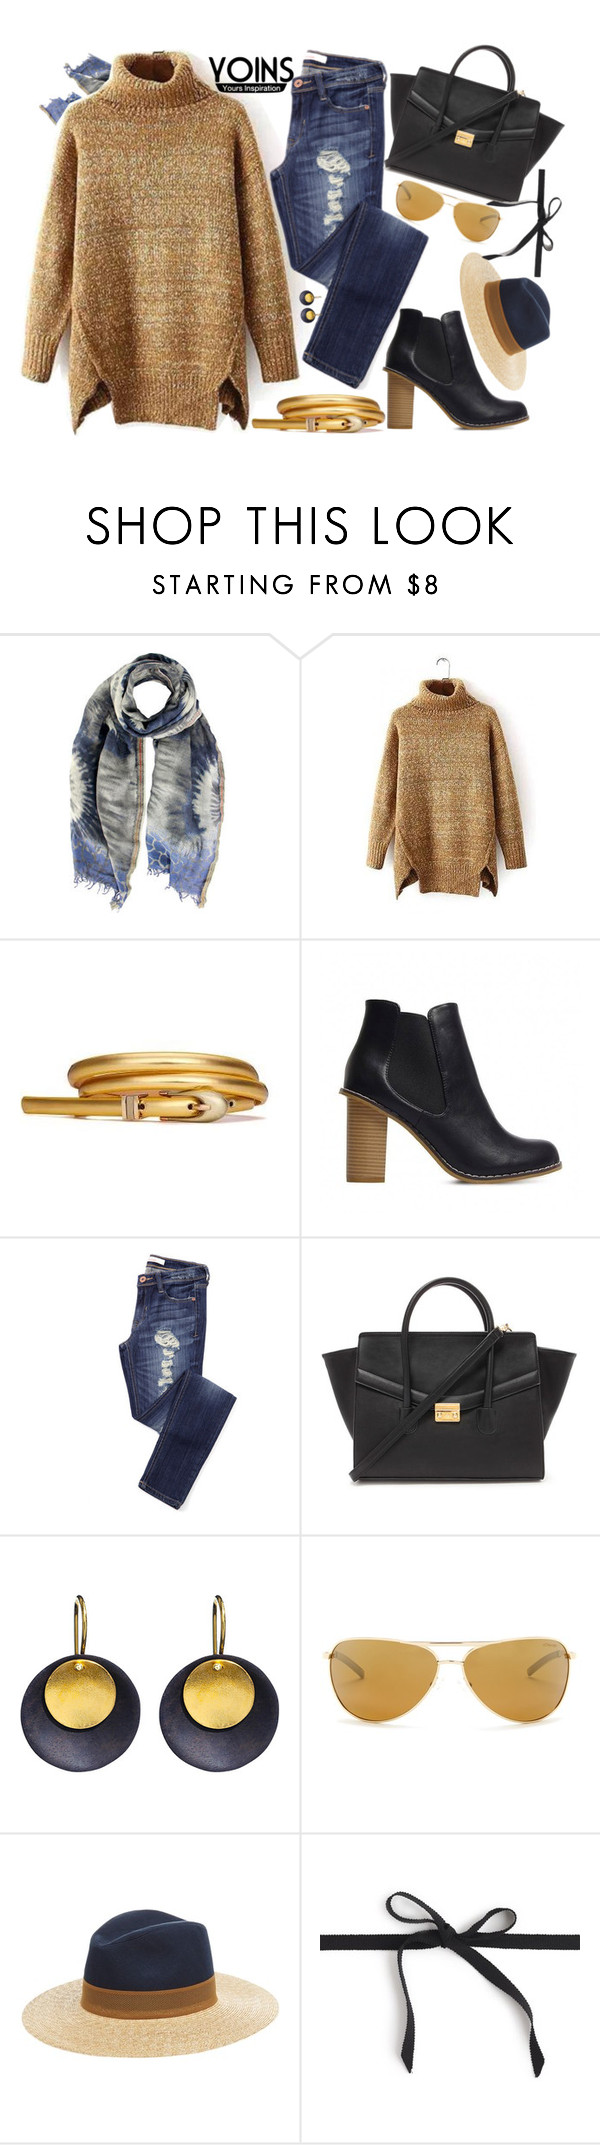 """Yoins"" by jiabao-krohn ❤ liked on Polyvore featuring Saachi, Forever 21, Hissia, Smith Optics, Lanvin, J.Crew, yoins, yoinscollection and loveyoins"